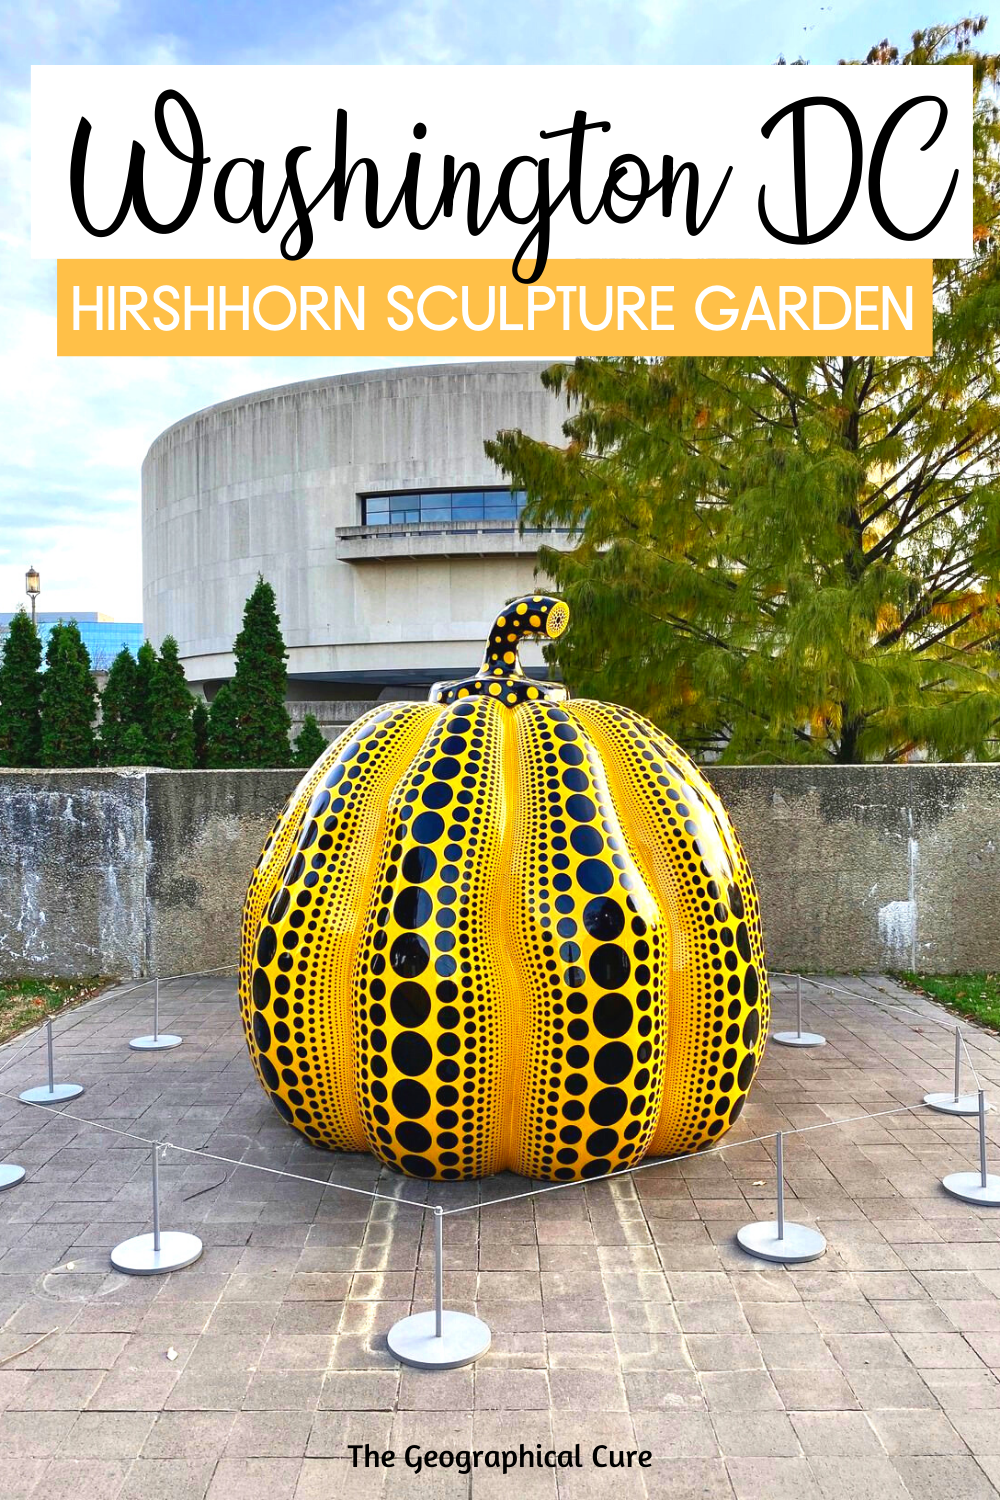 Guide to Visiting the Hirshhorn Sculpture Garden in Washington DC